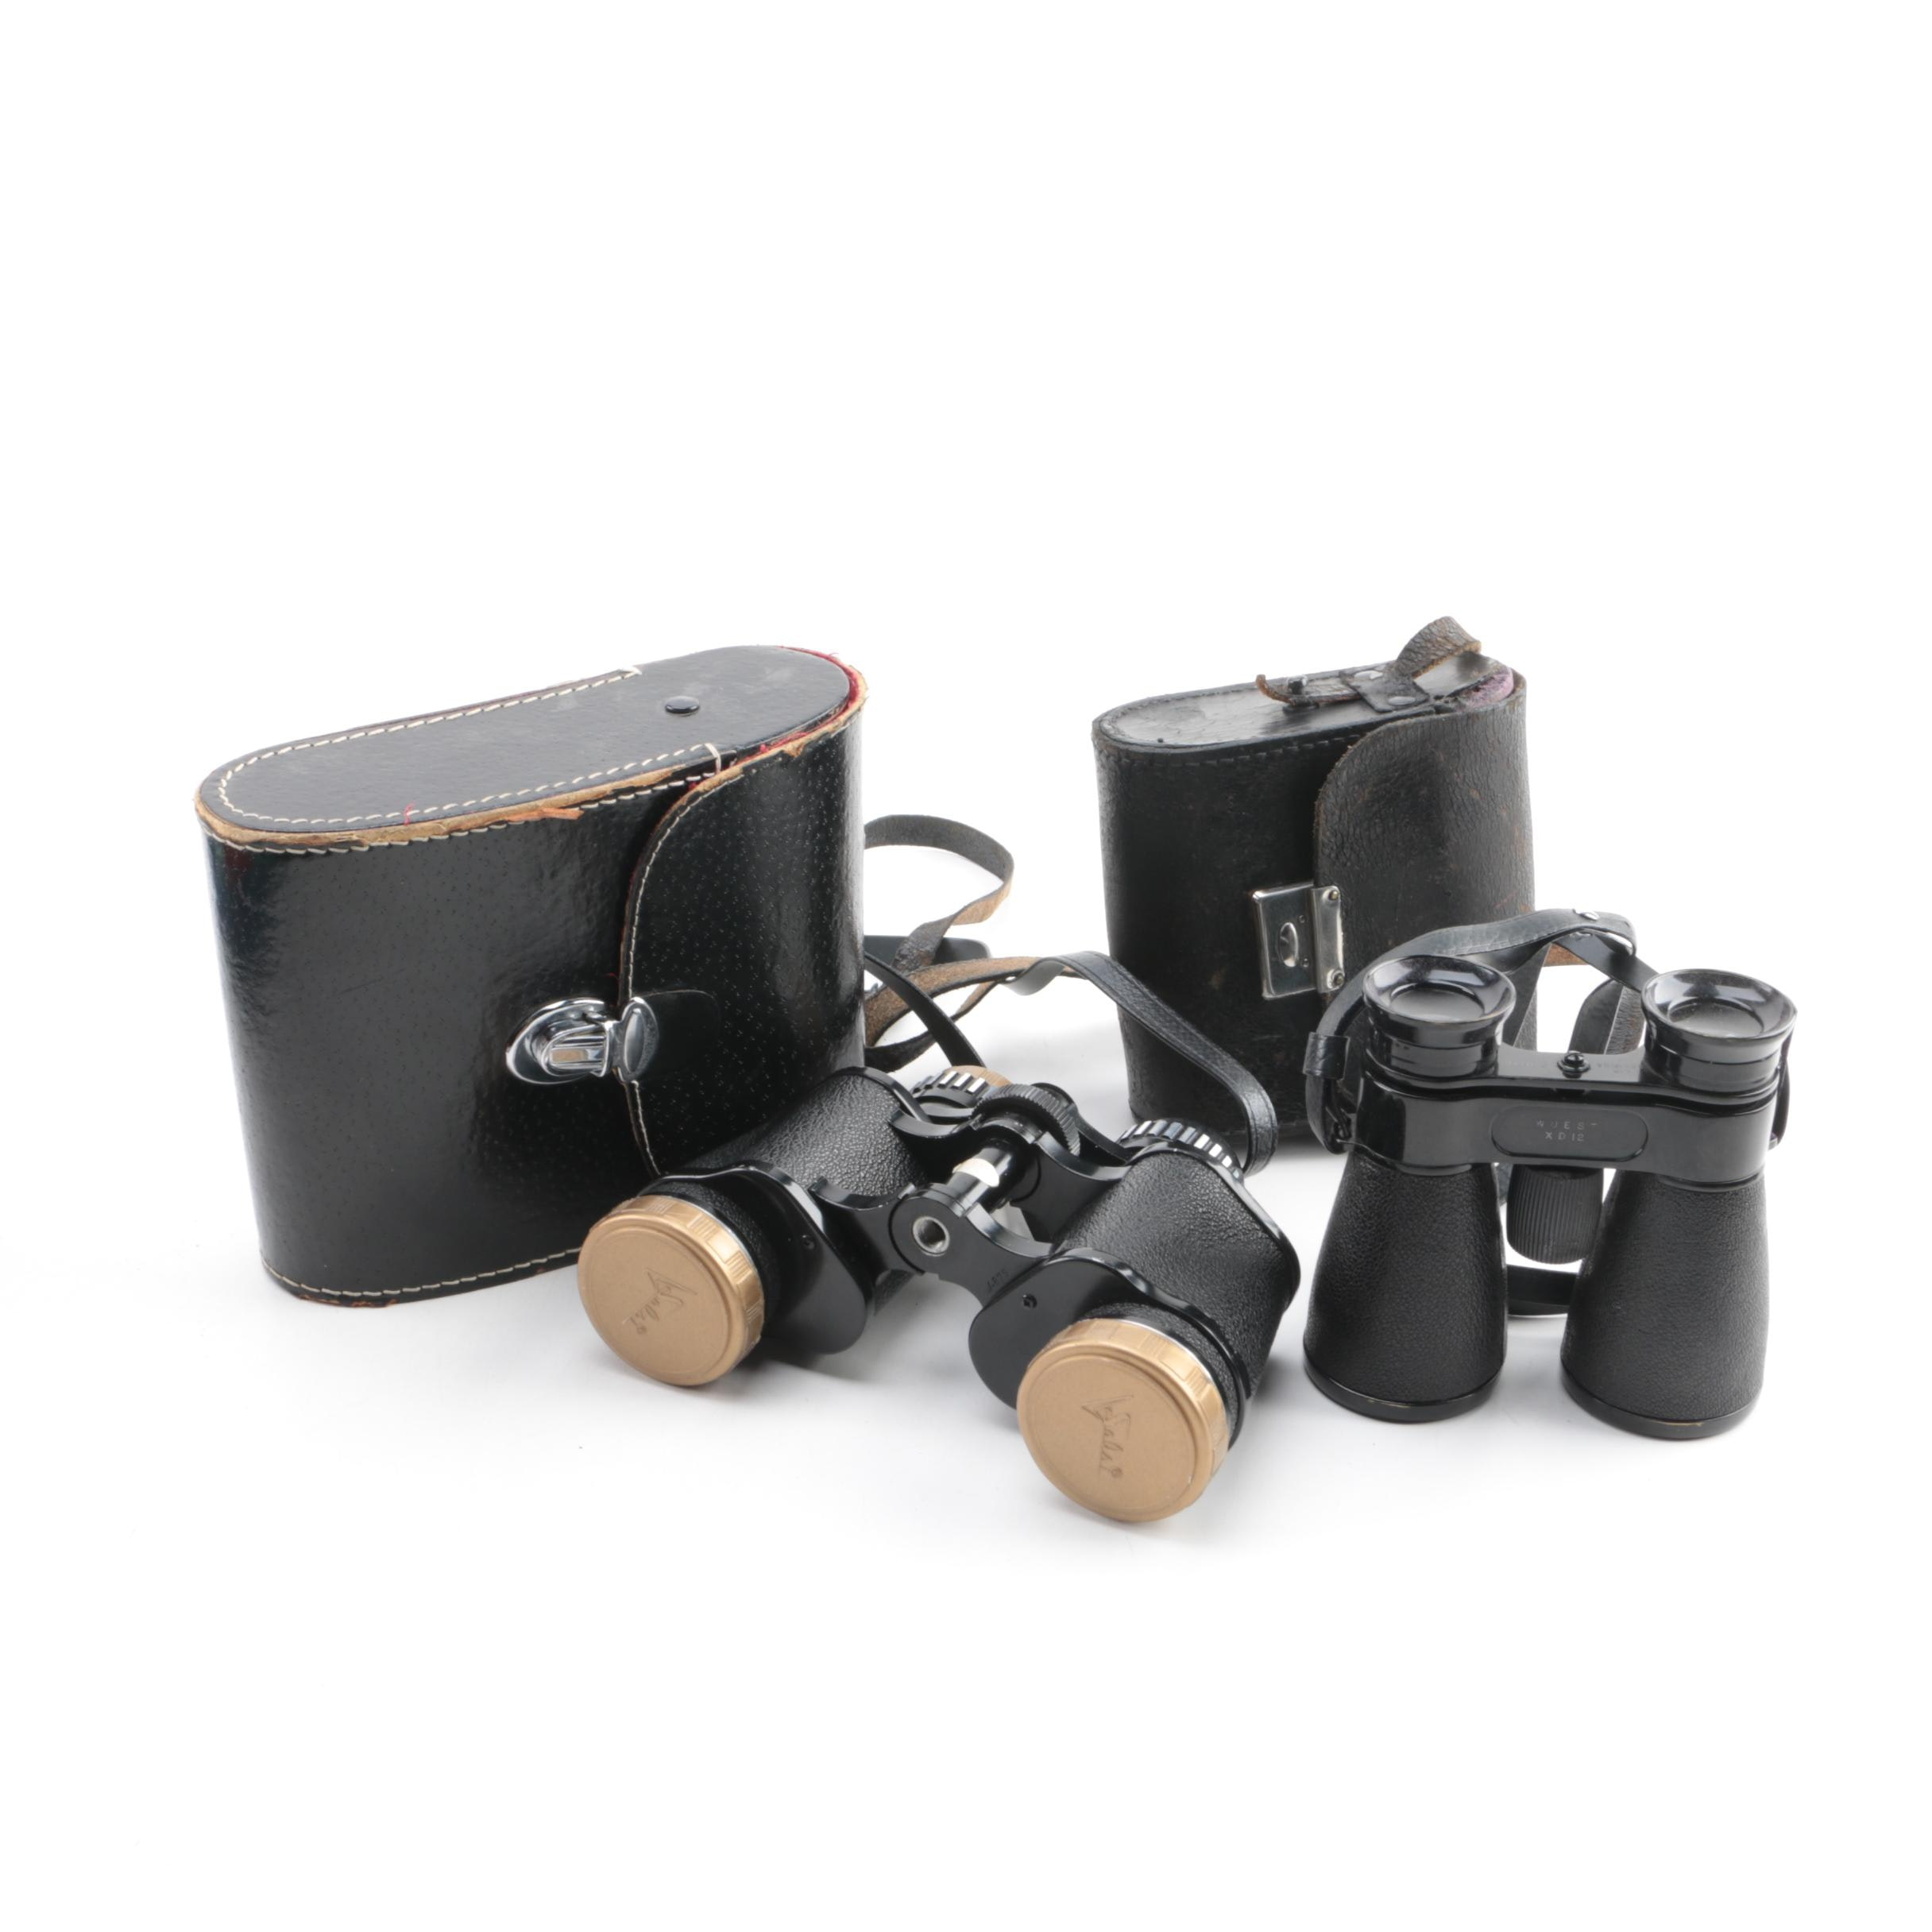 Solsi And Wuest Binoculars With Cases